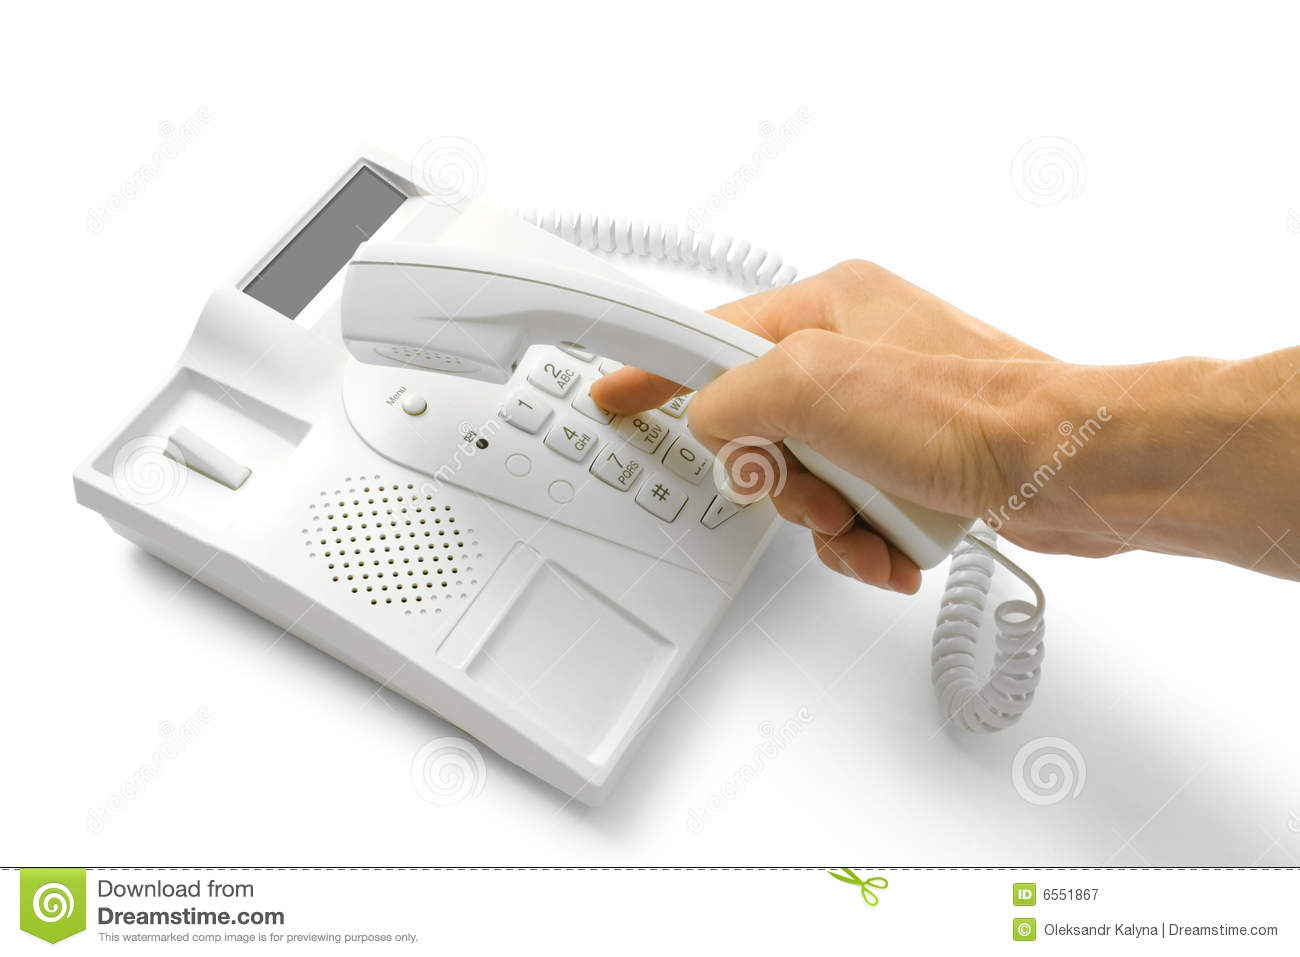 Telephone with hands